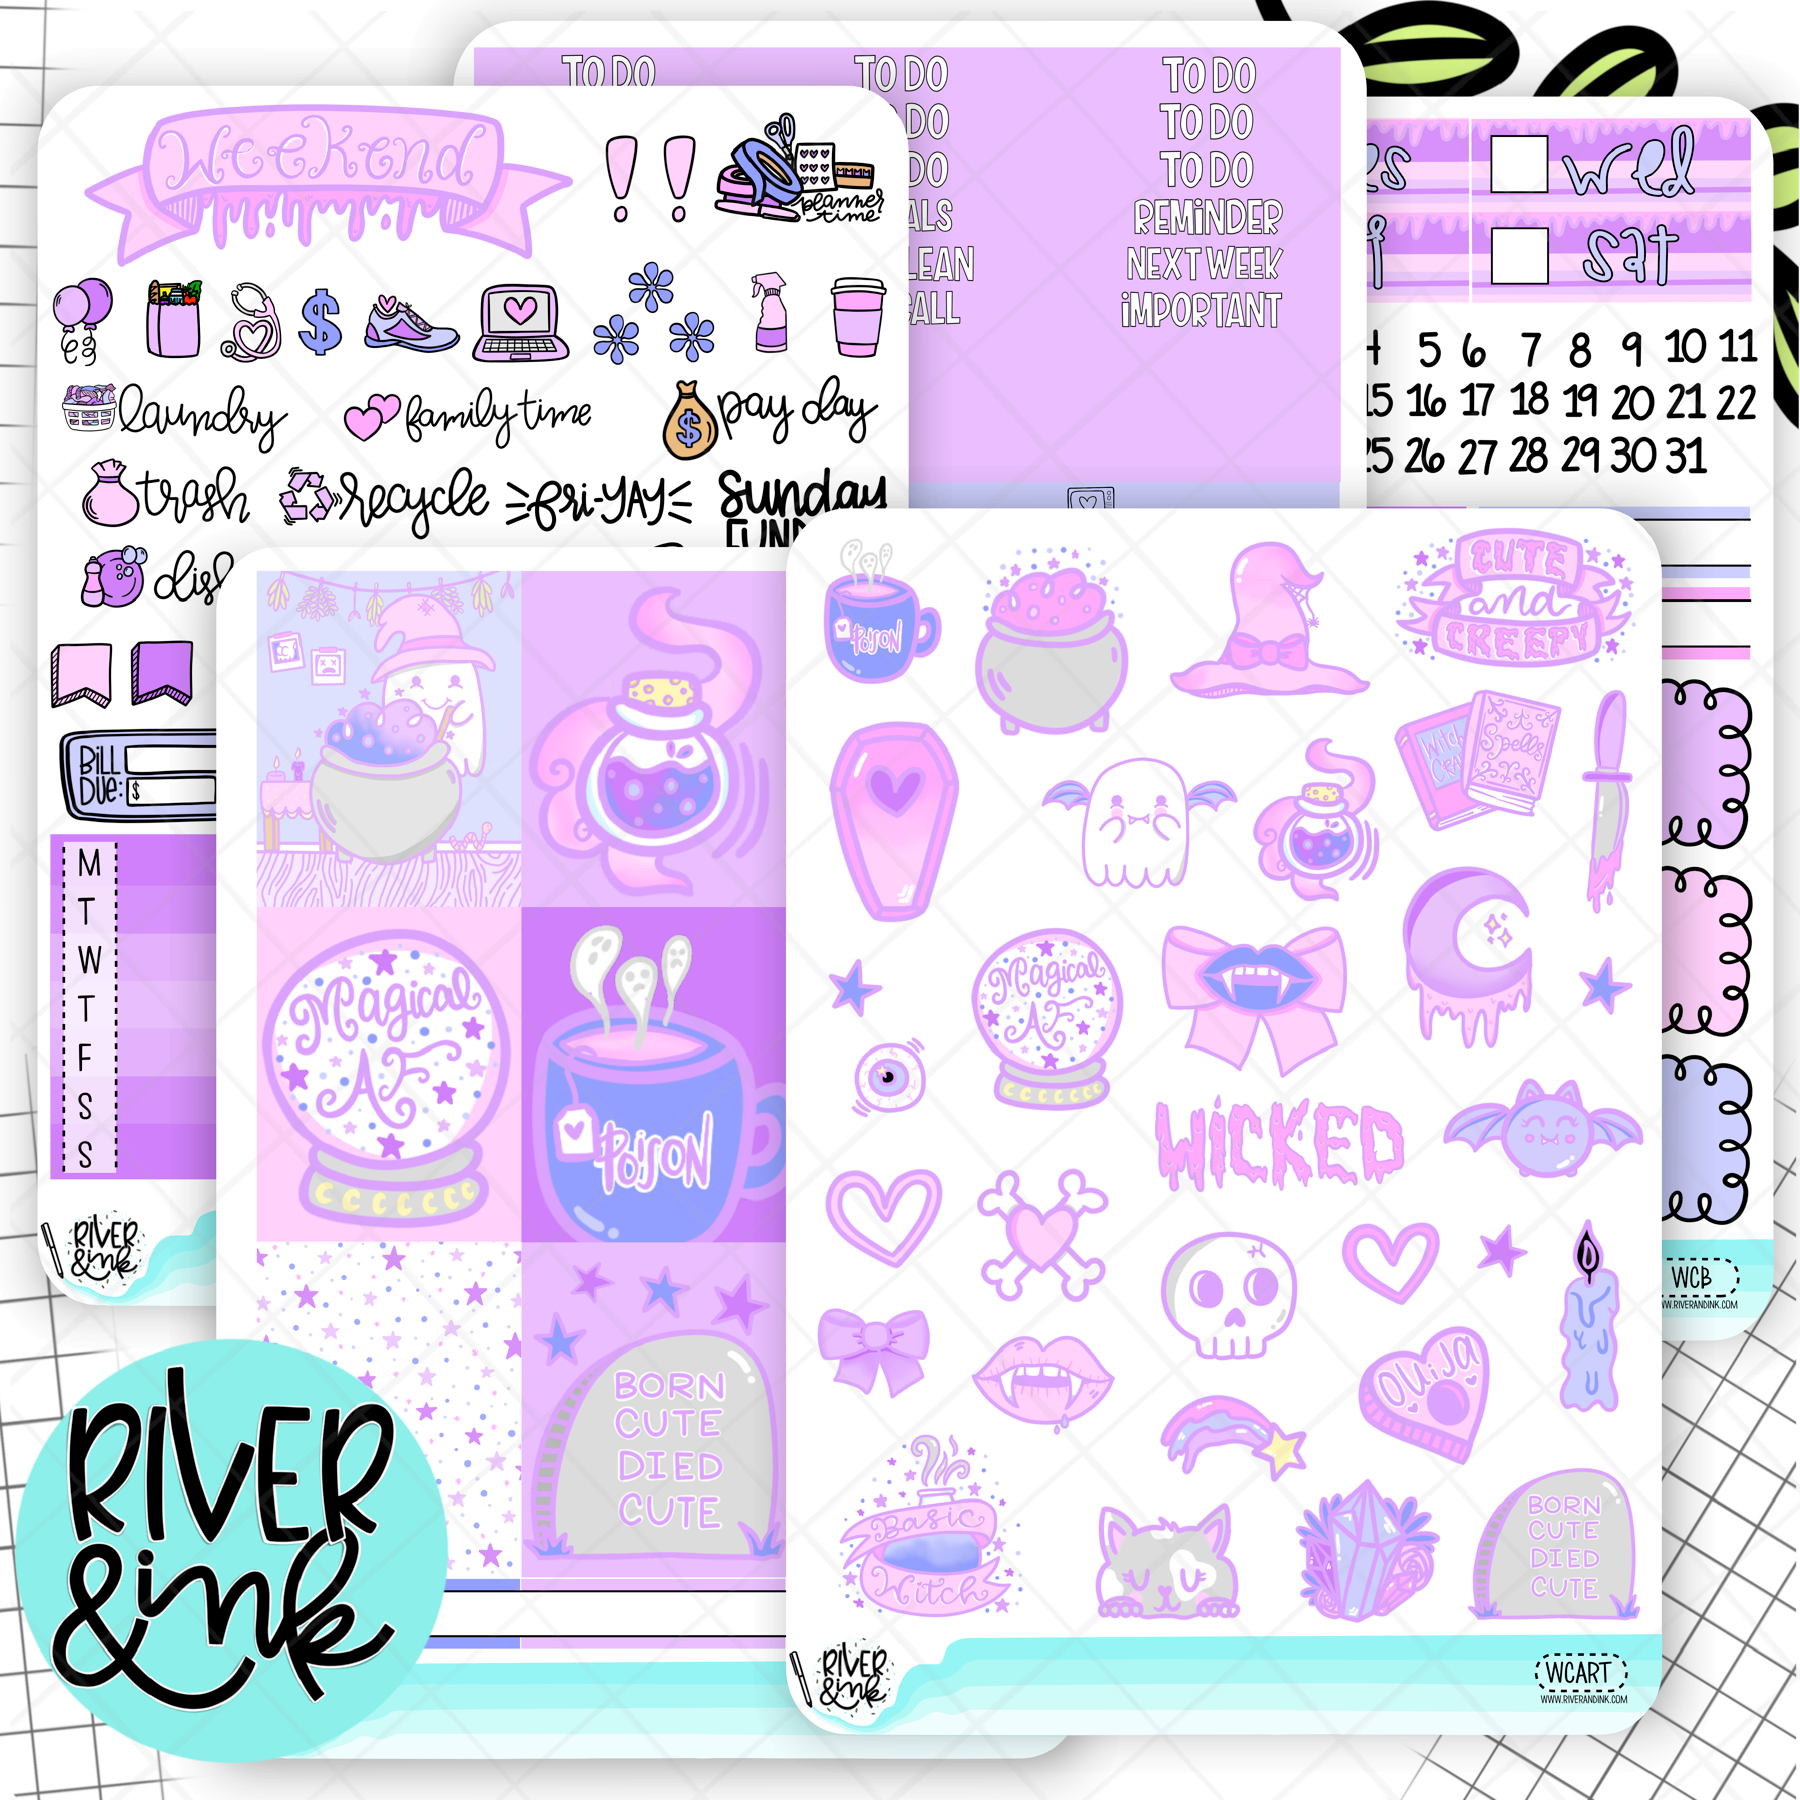 Wicked Cute Halloween | Weekly Vertical Planner Stickers Kit